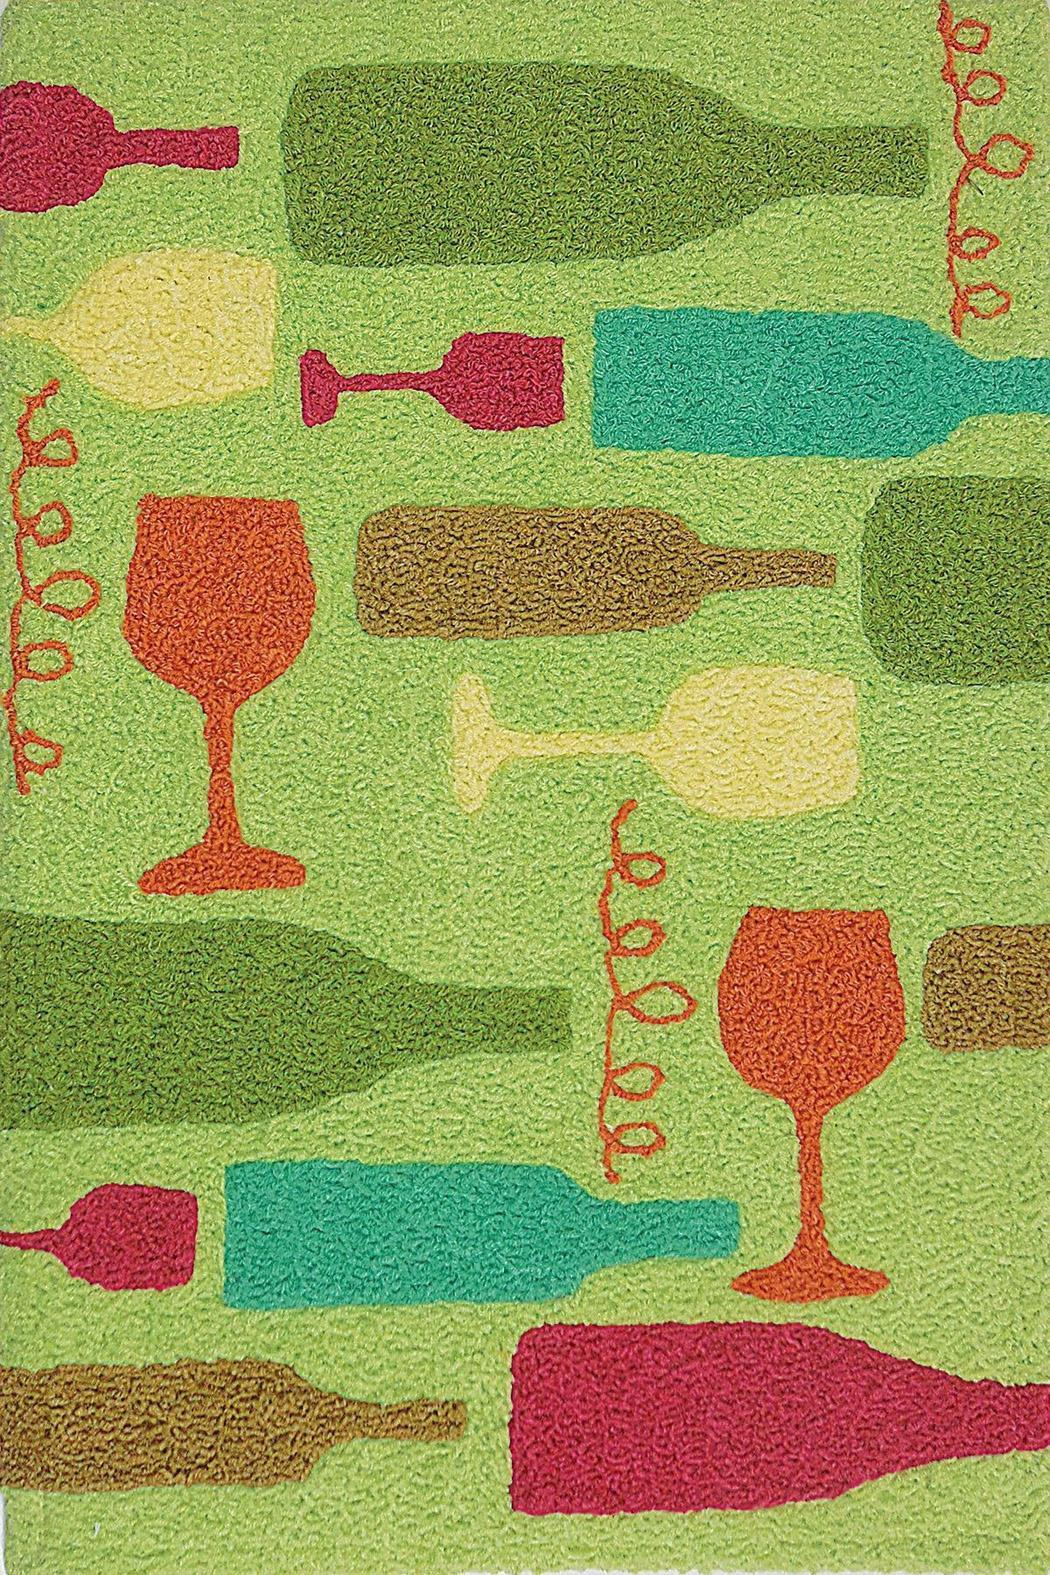 Jelly Bean Rugs Indoor Outdoor Rug - Main Image